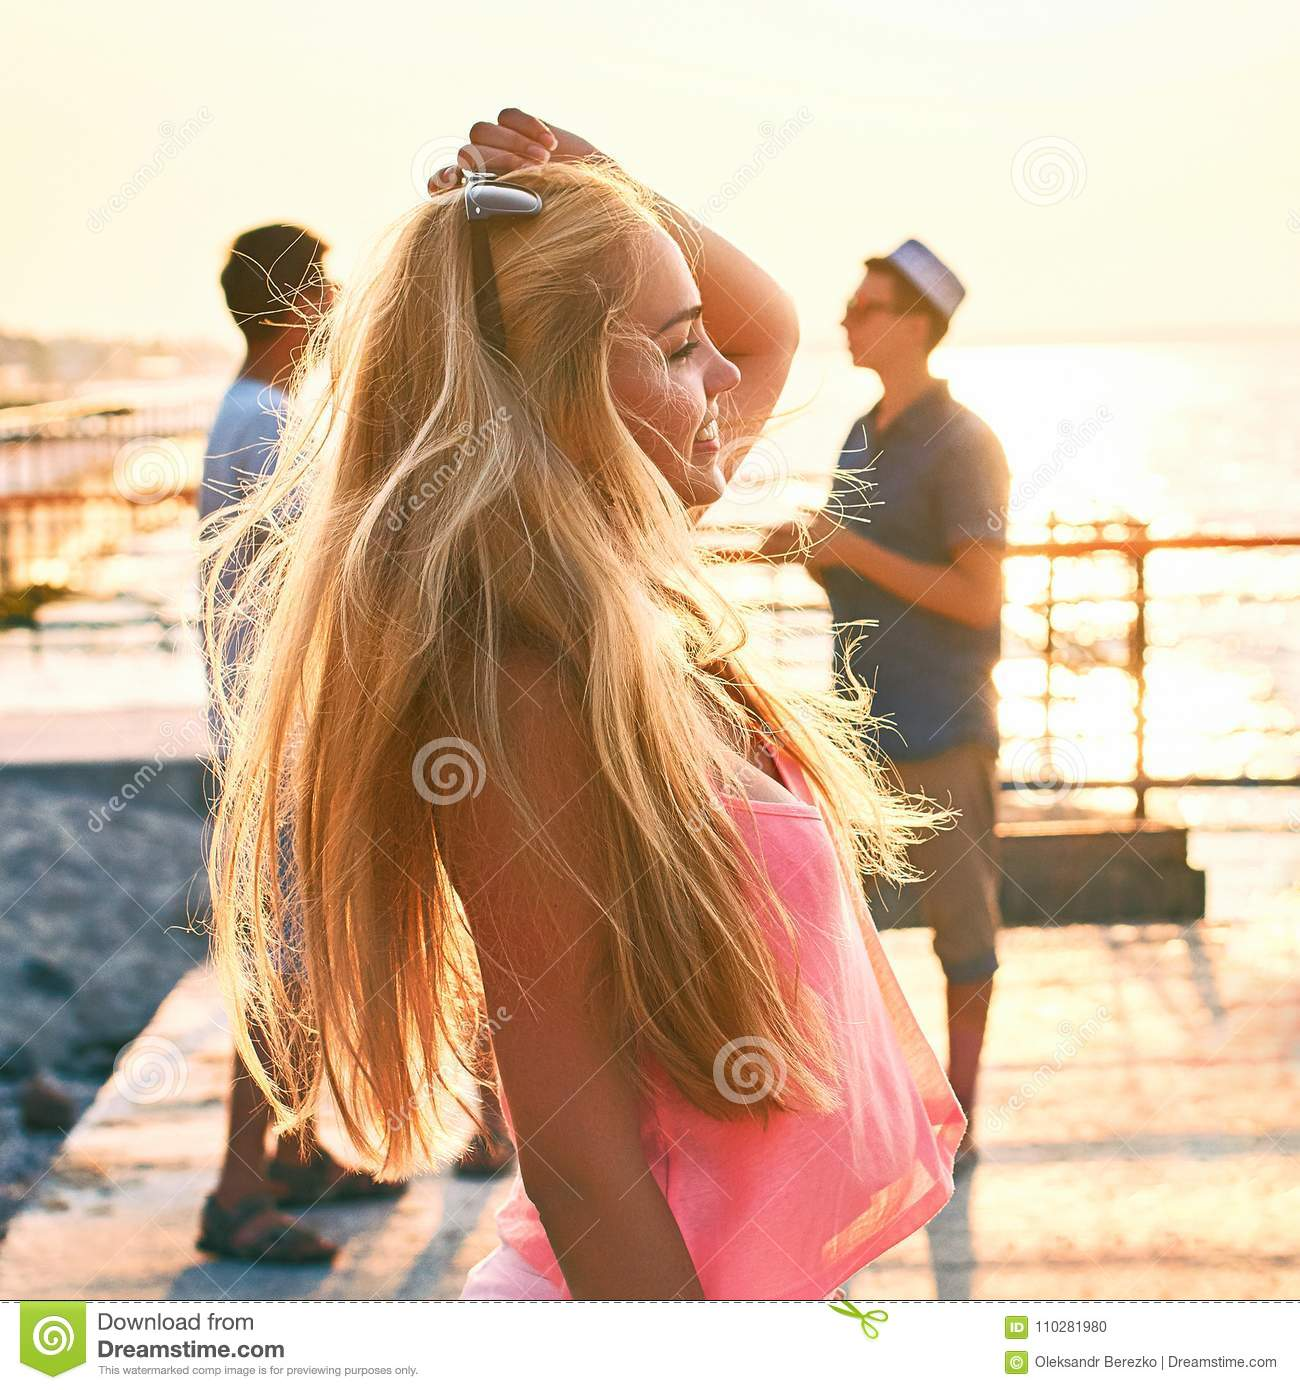 Young beautiful blonde girl in pink top having fun at the evening seaside with her friends on background